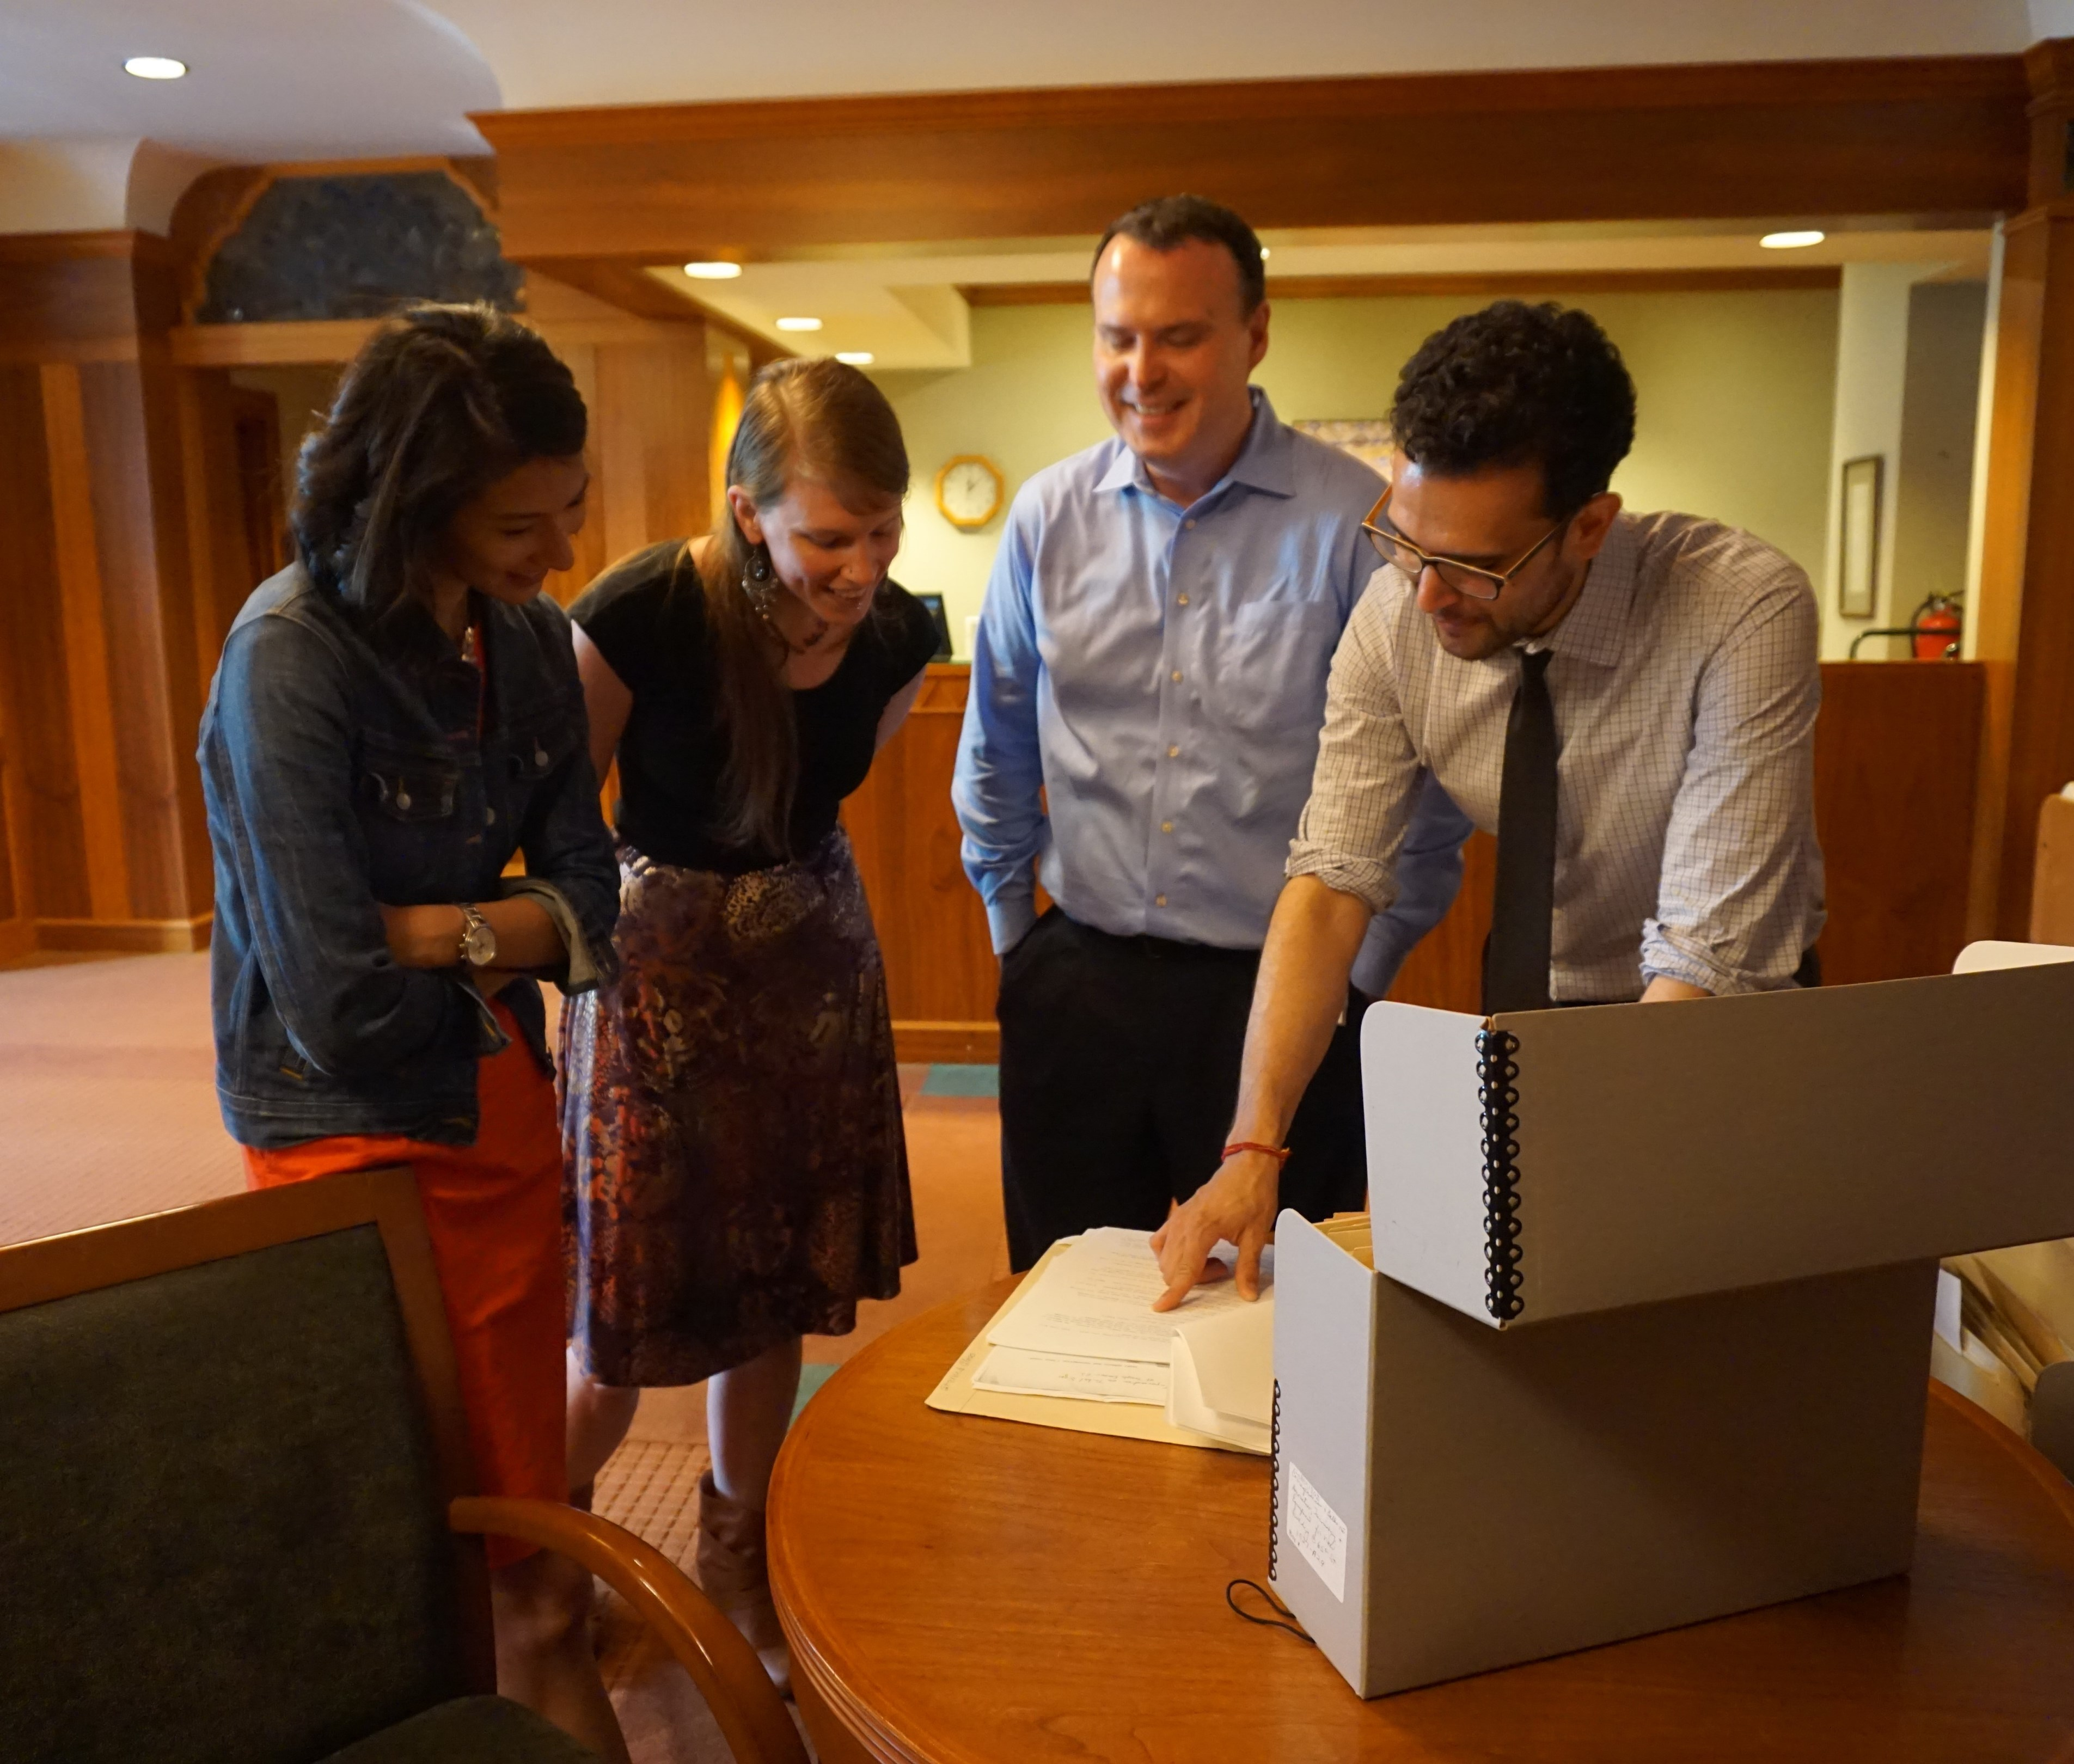 Laura, Bonnie, and Jim check out the archives at Temple Emanu-El with Curator Warren Klein.